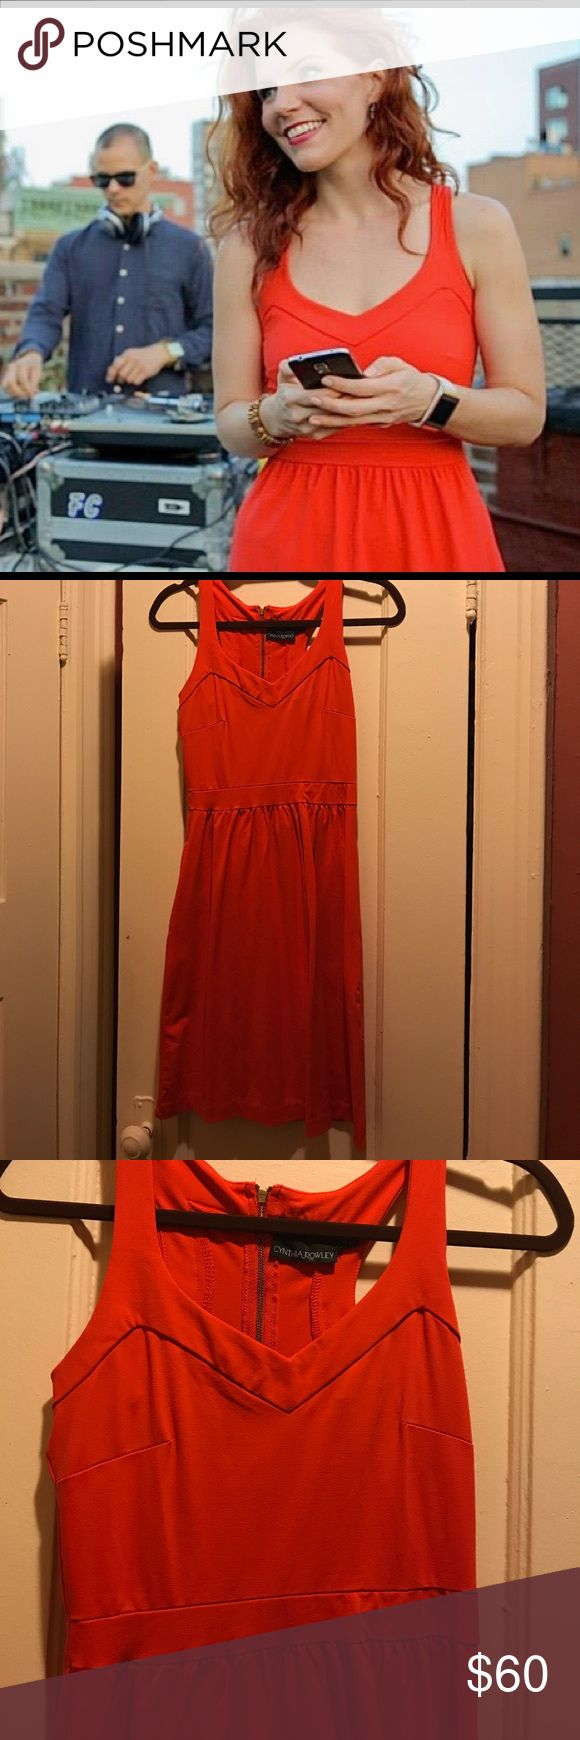 Fire engine red midi dress Cynthia Rowley Super cute dress by Cynthia Rowley. Worn once for a shoot. Its a great bright red color. Has pockets :) super cute for date night or summer wedding guest! Cynthia Rowley Dresses Mini